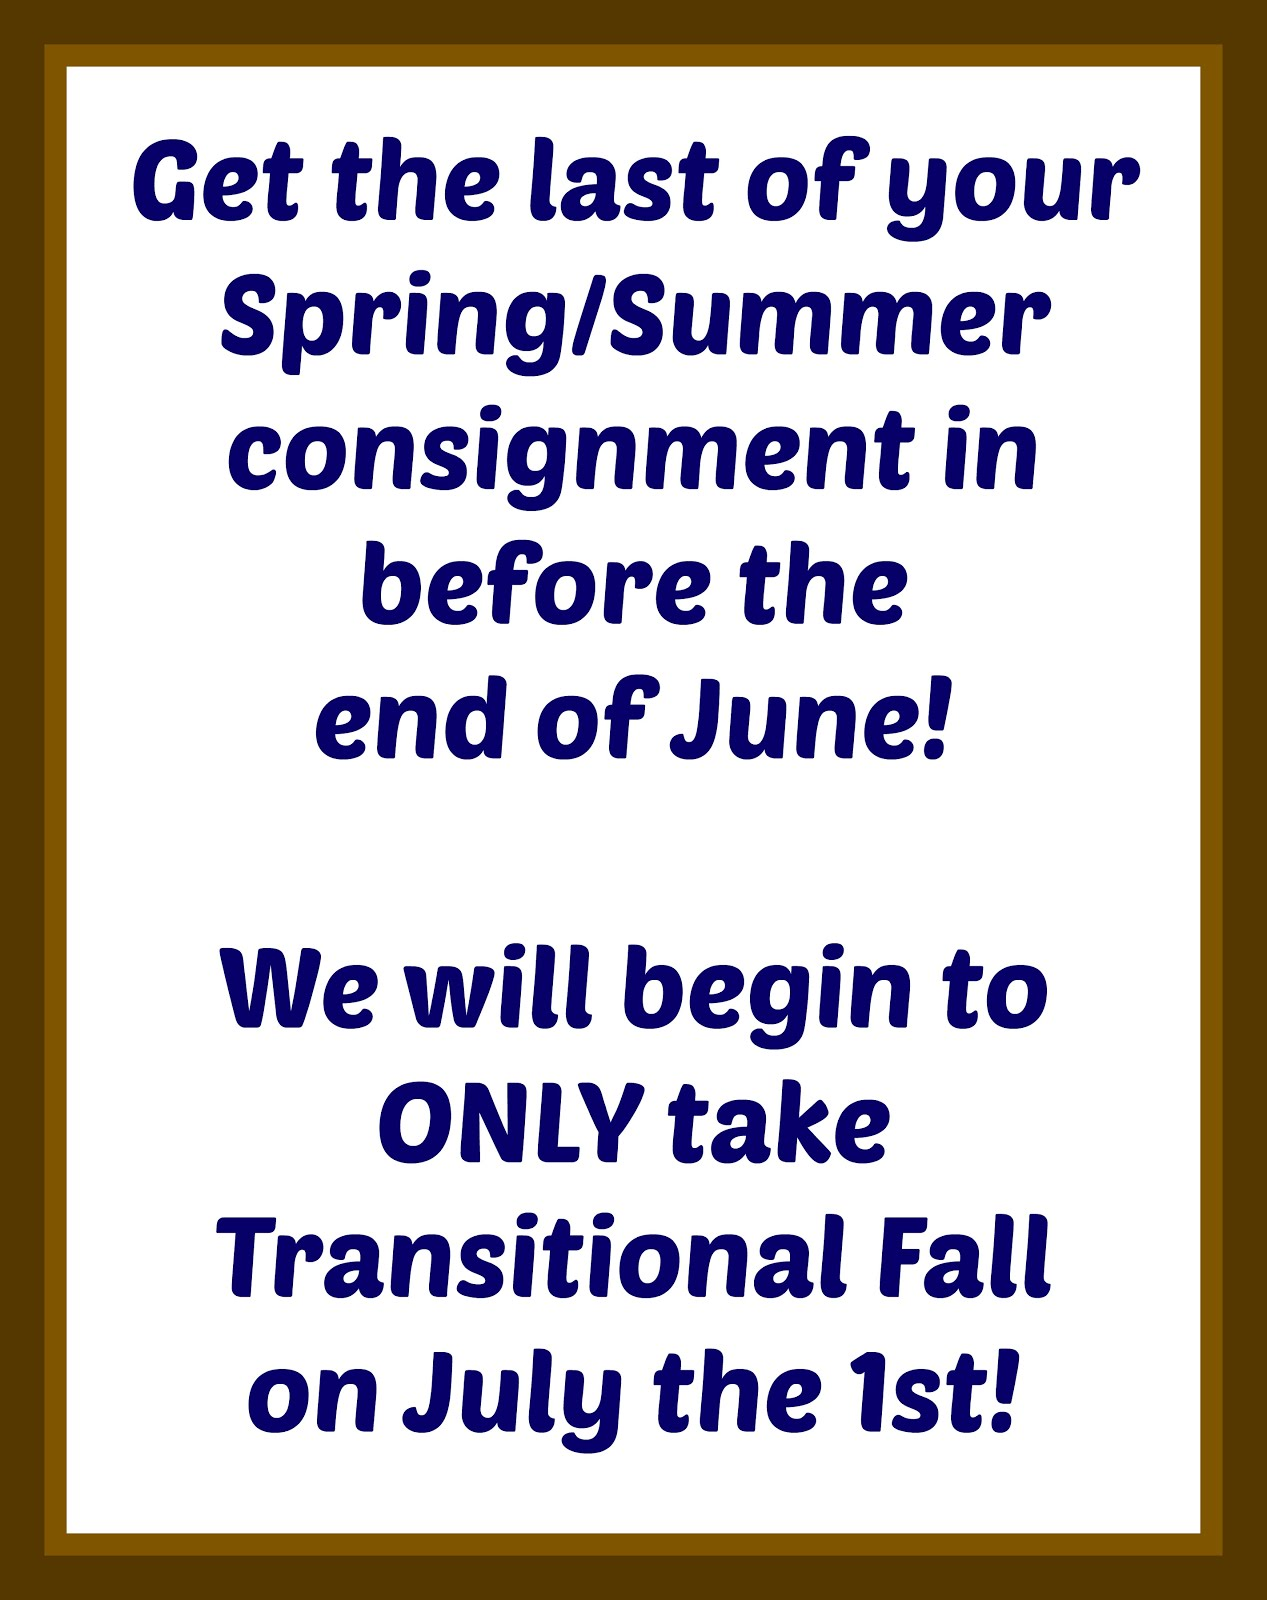 Season Consignment Switch!